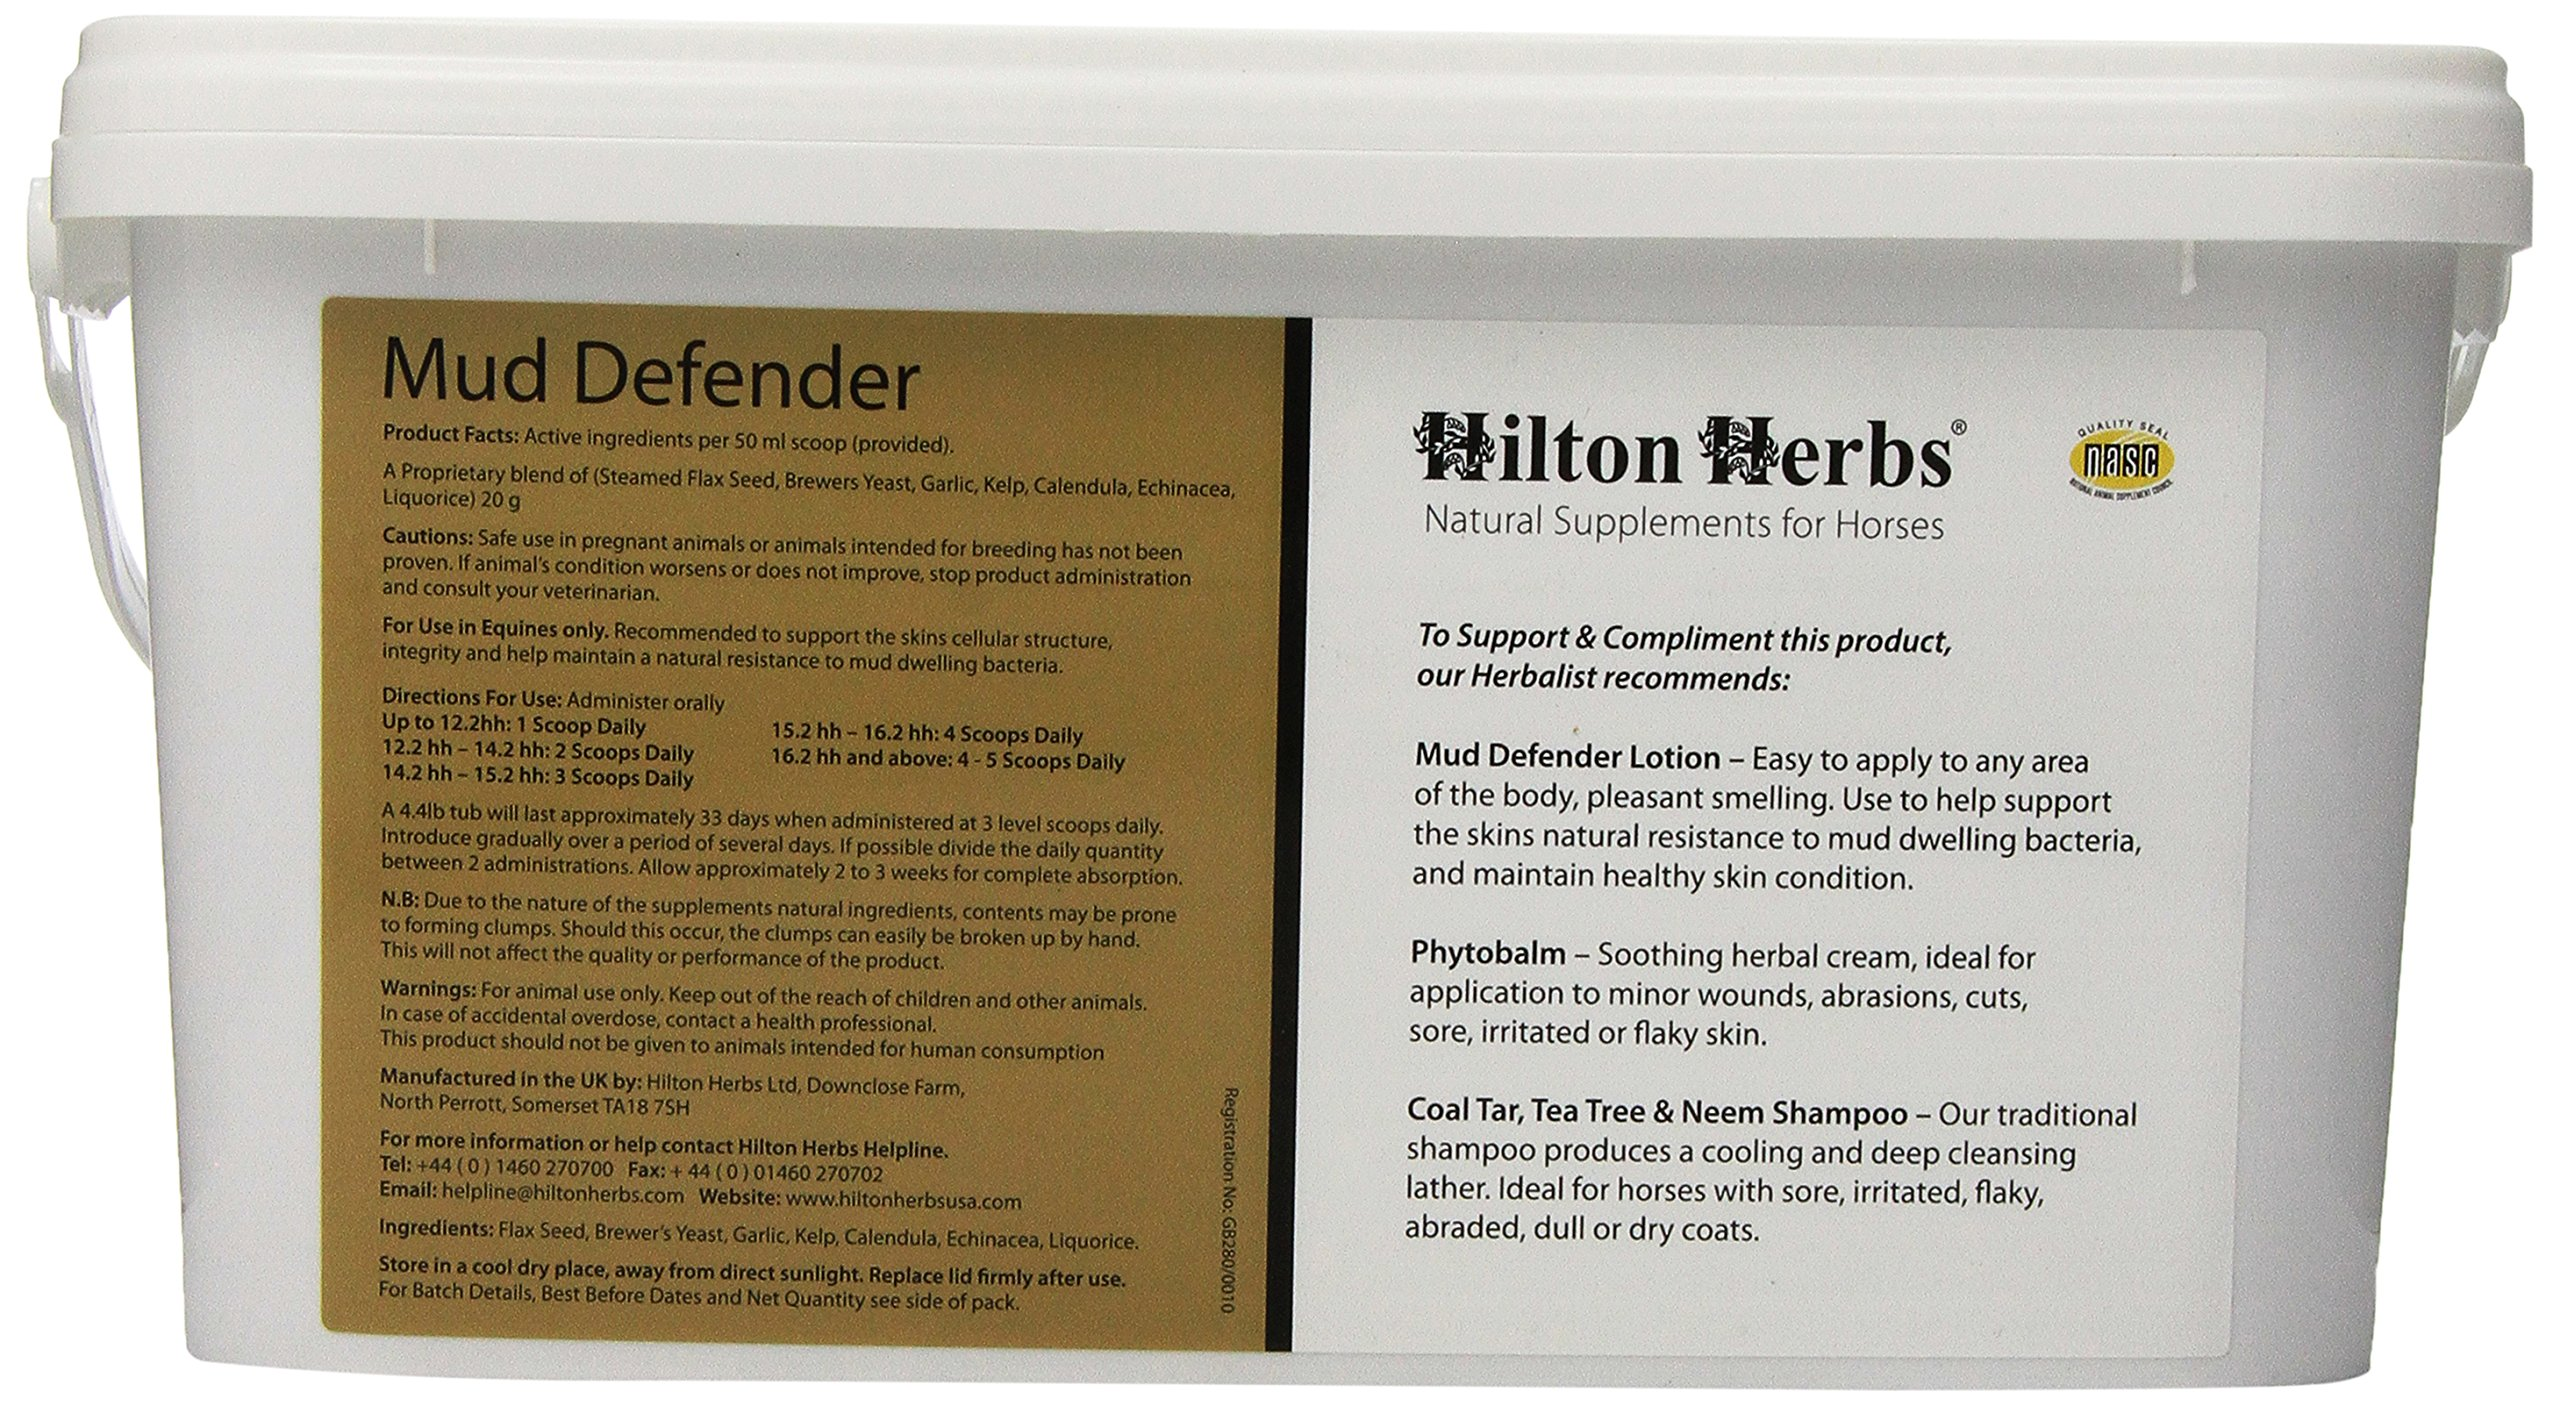 Hilton Herbs Mud Defender Tub Bacteria Resistant Support for Horses, 2kg Tub by Hilton Herbs (Image #3)